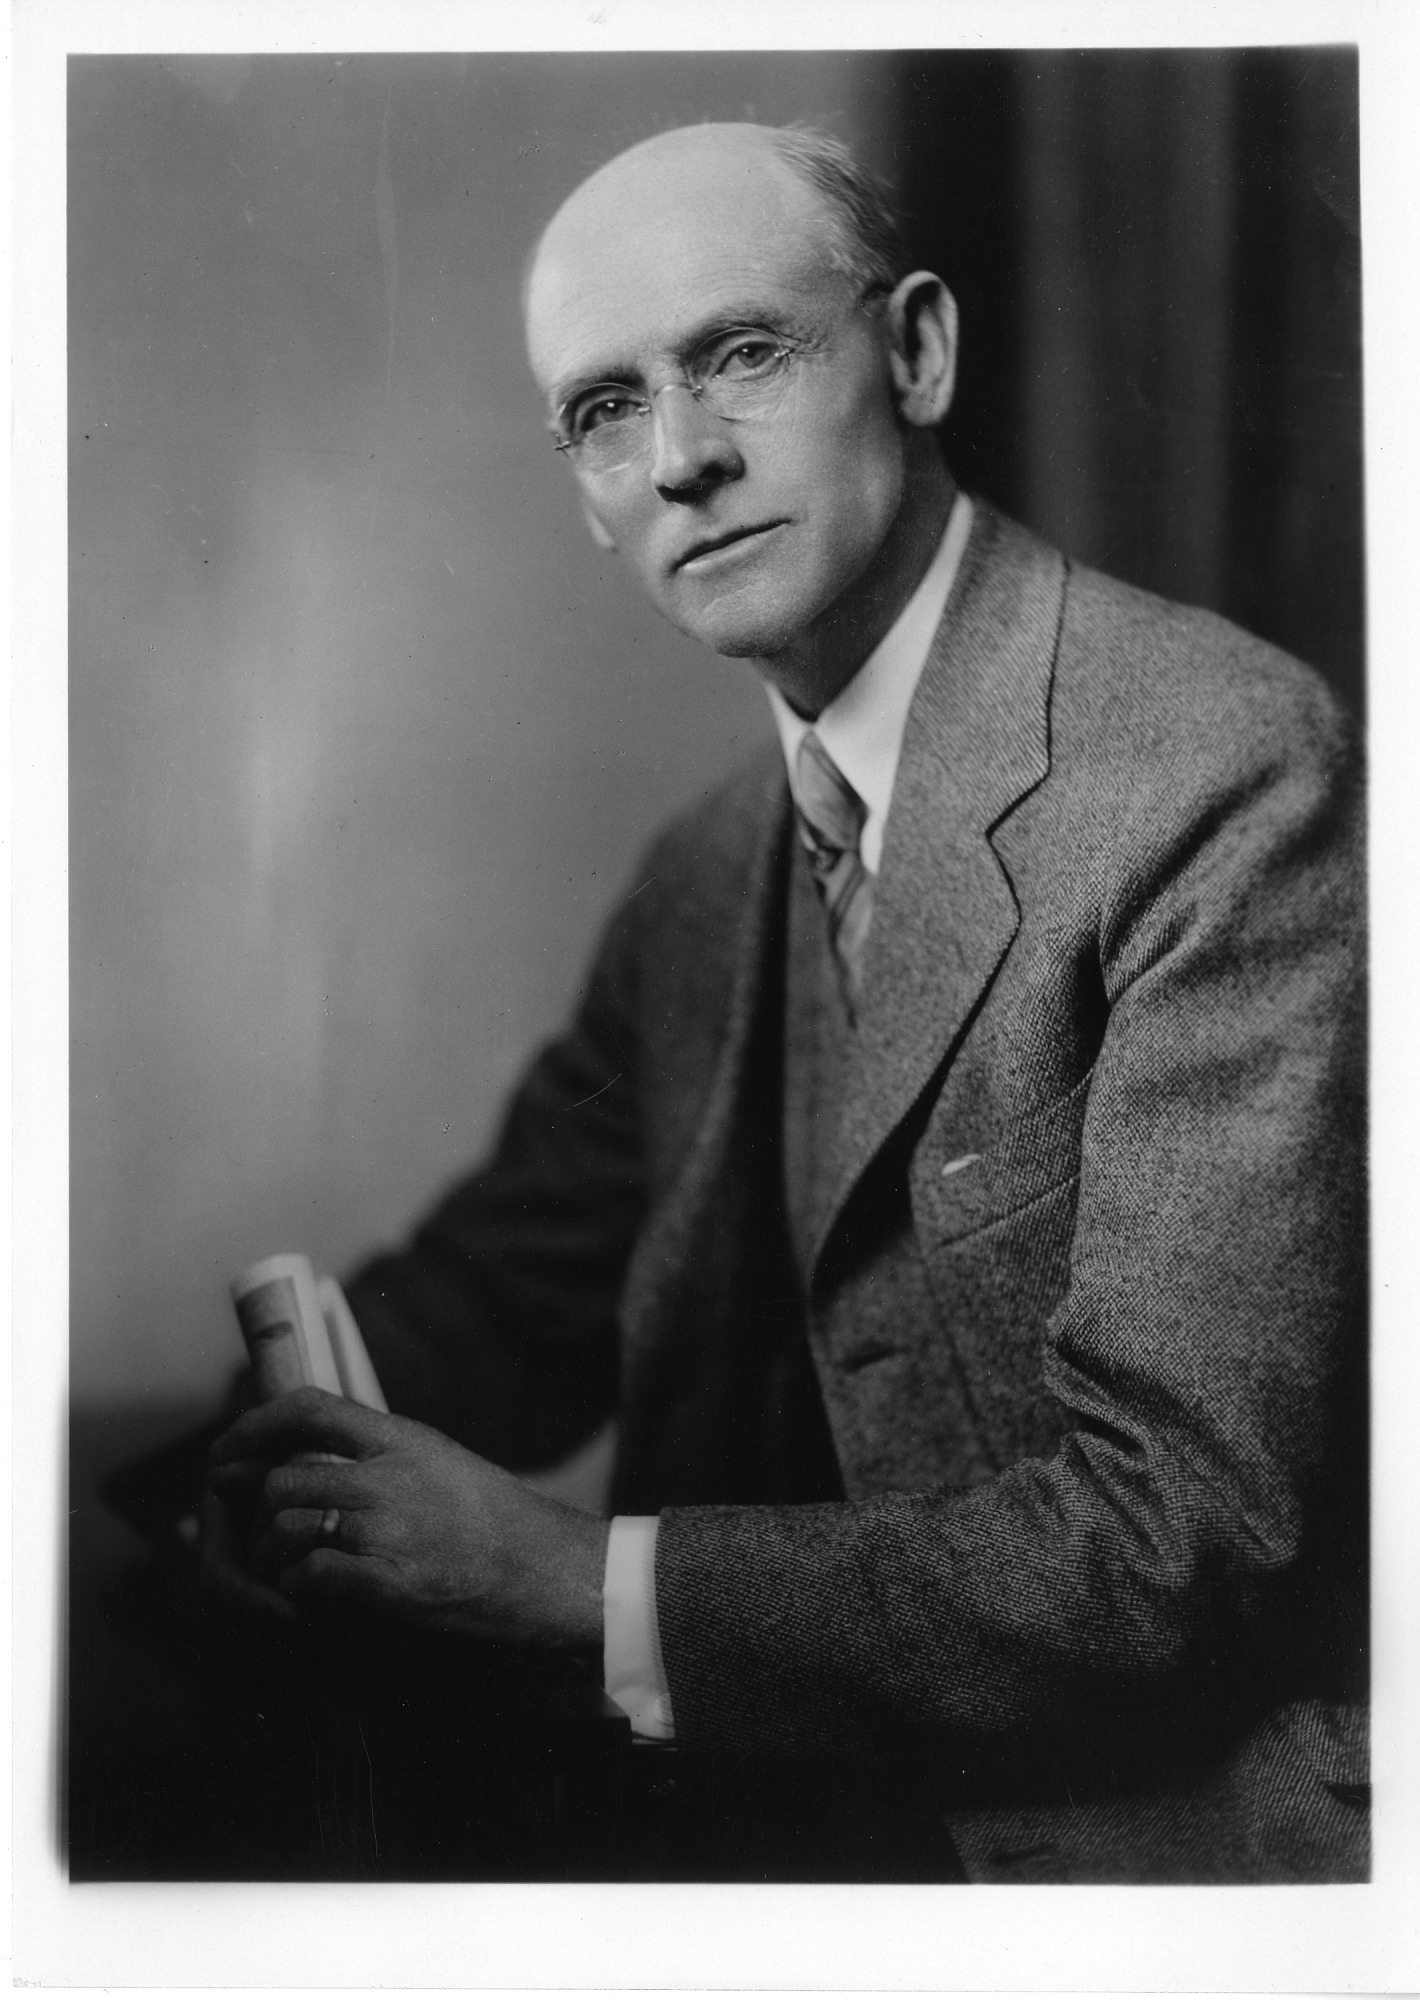 William L. Bray (1865-1953), Smithsonian Institution Archives, SIA Acc. 90-105 [SIA2008-0060].